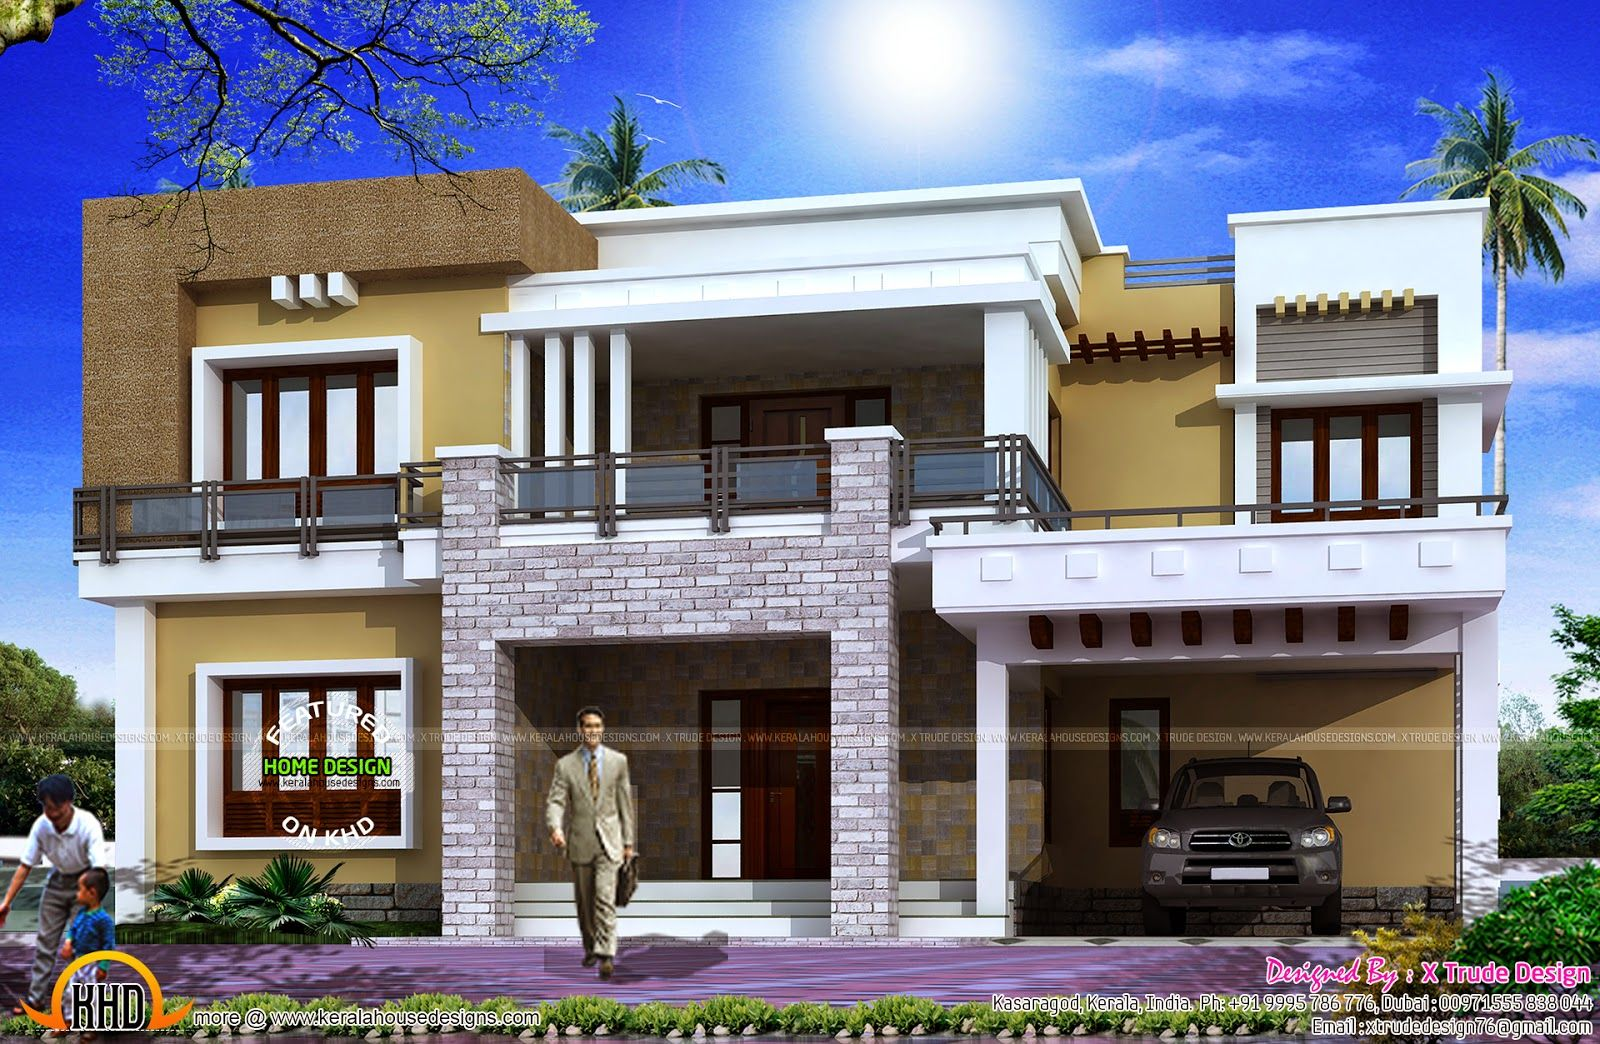 Superior Front Side Of 2800 Square Feet (260 Square Meter) (311 Square Yards)